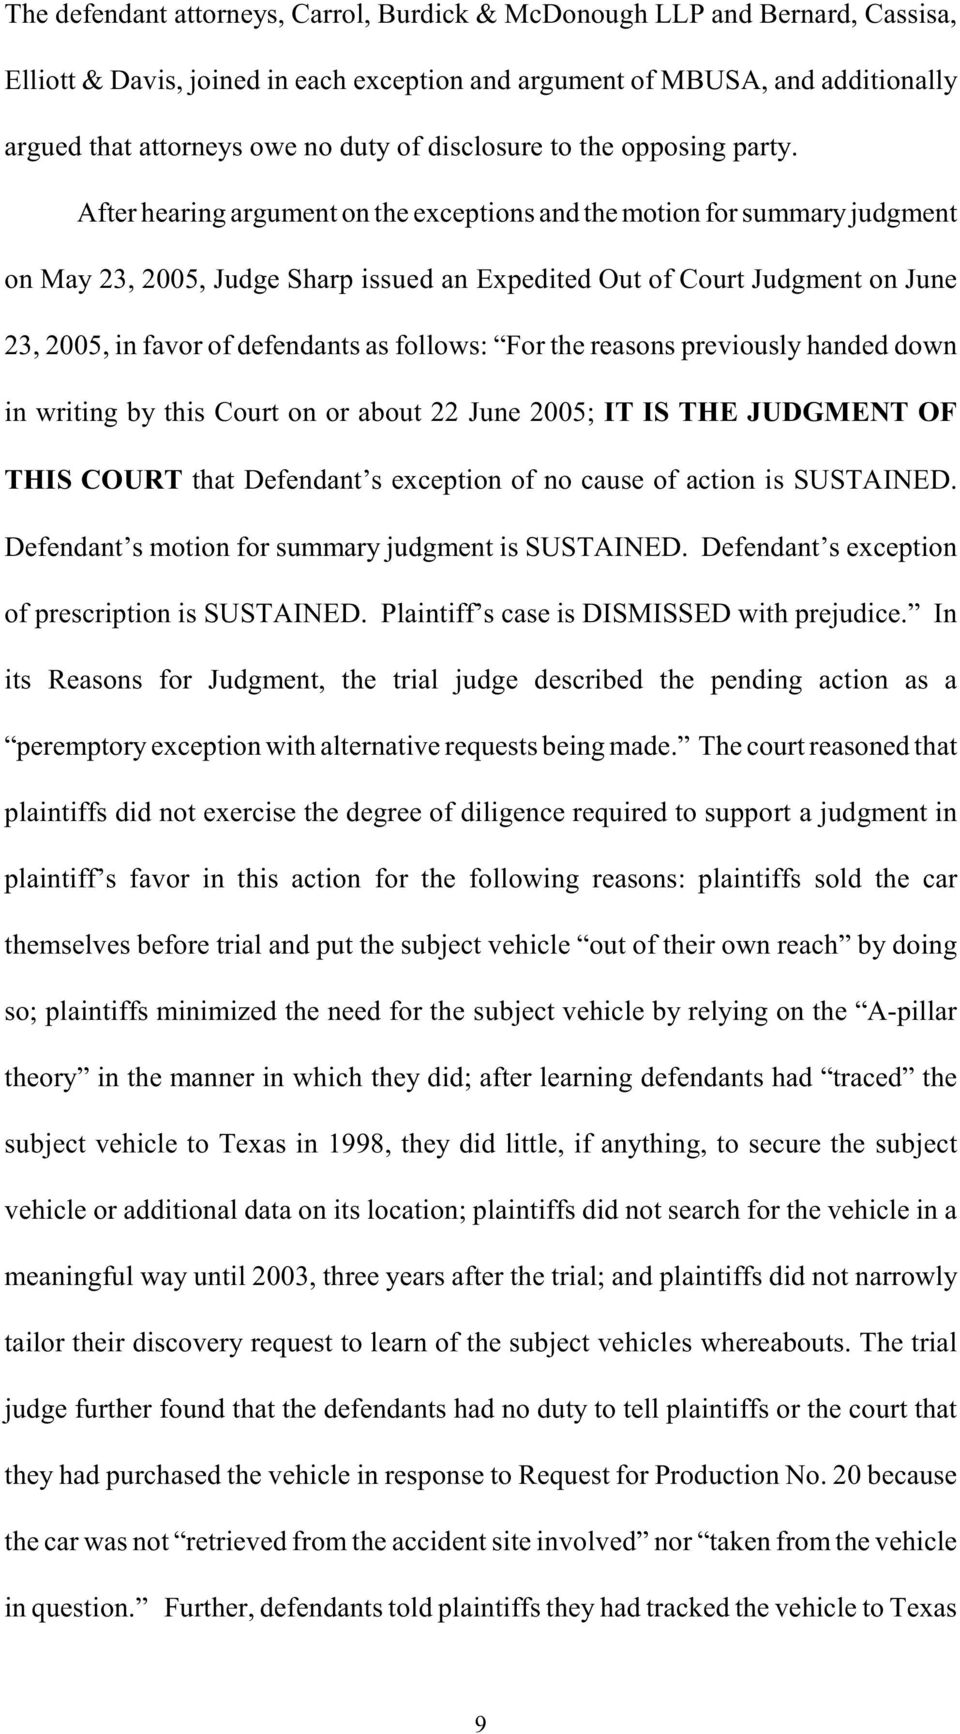 After hearing argument on the exceptions and the motion for summary judgment on May 23, 2005, Judge Sharp issued an Expedited Out of Court Judgment on June 23, 2005, in favor of defendants as